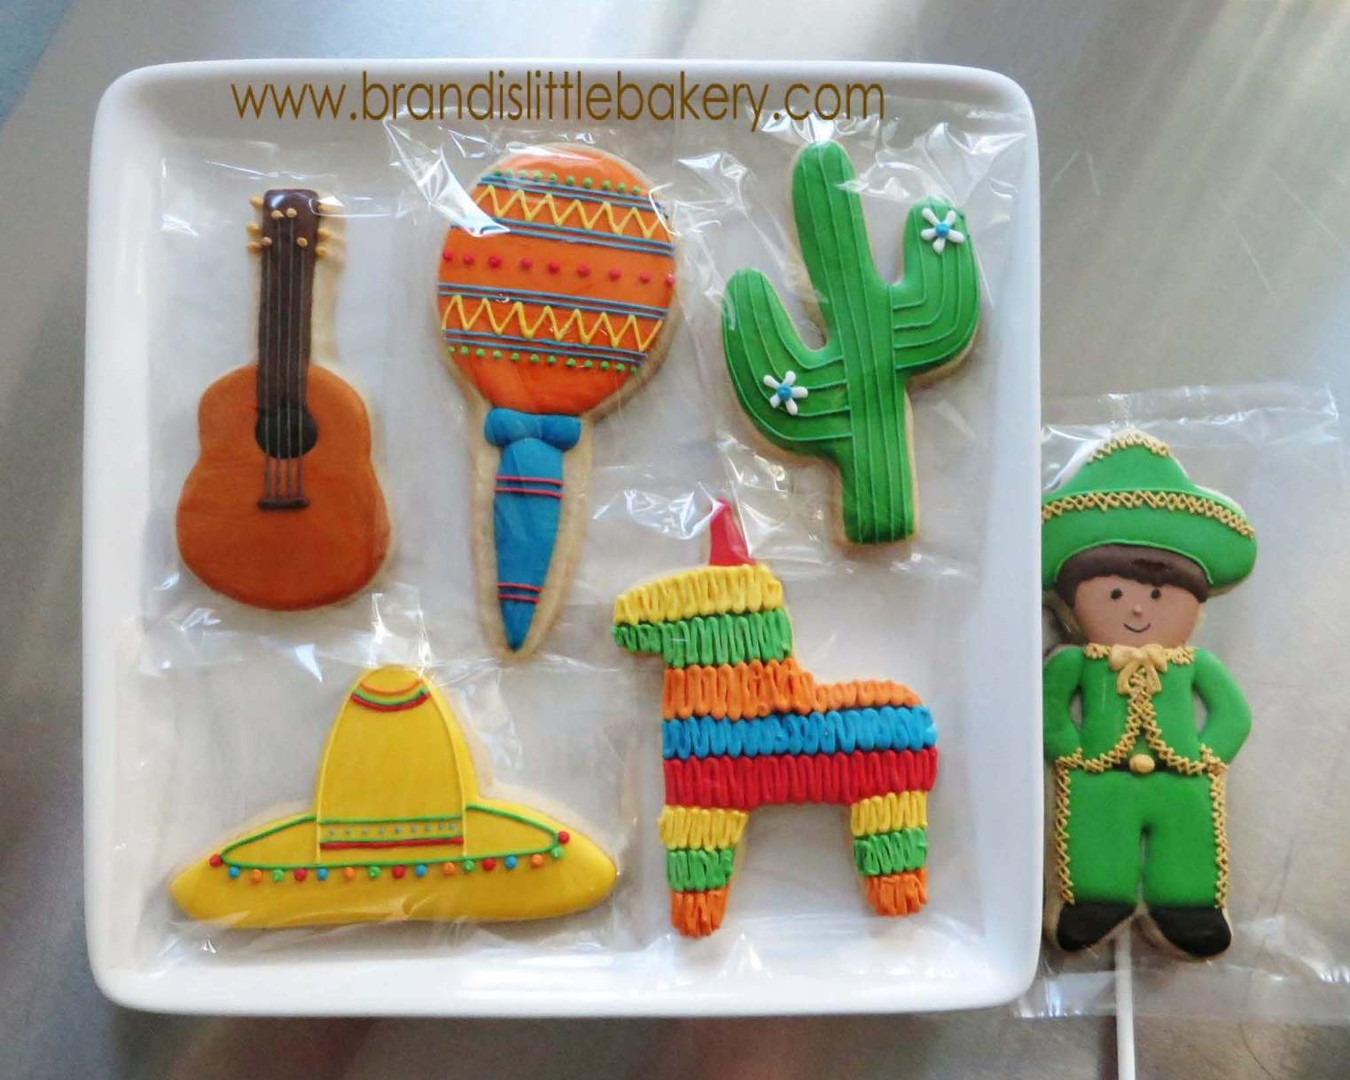 Edible images